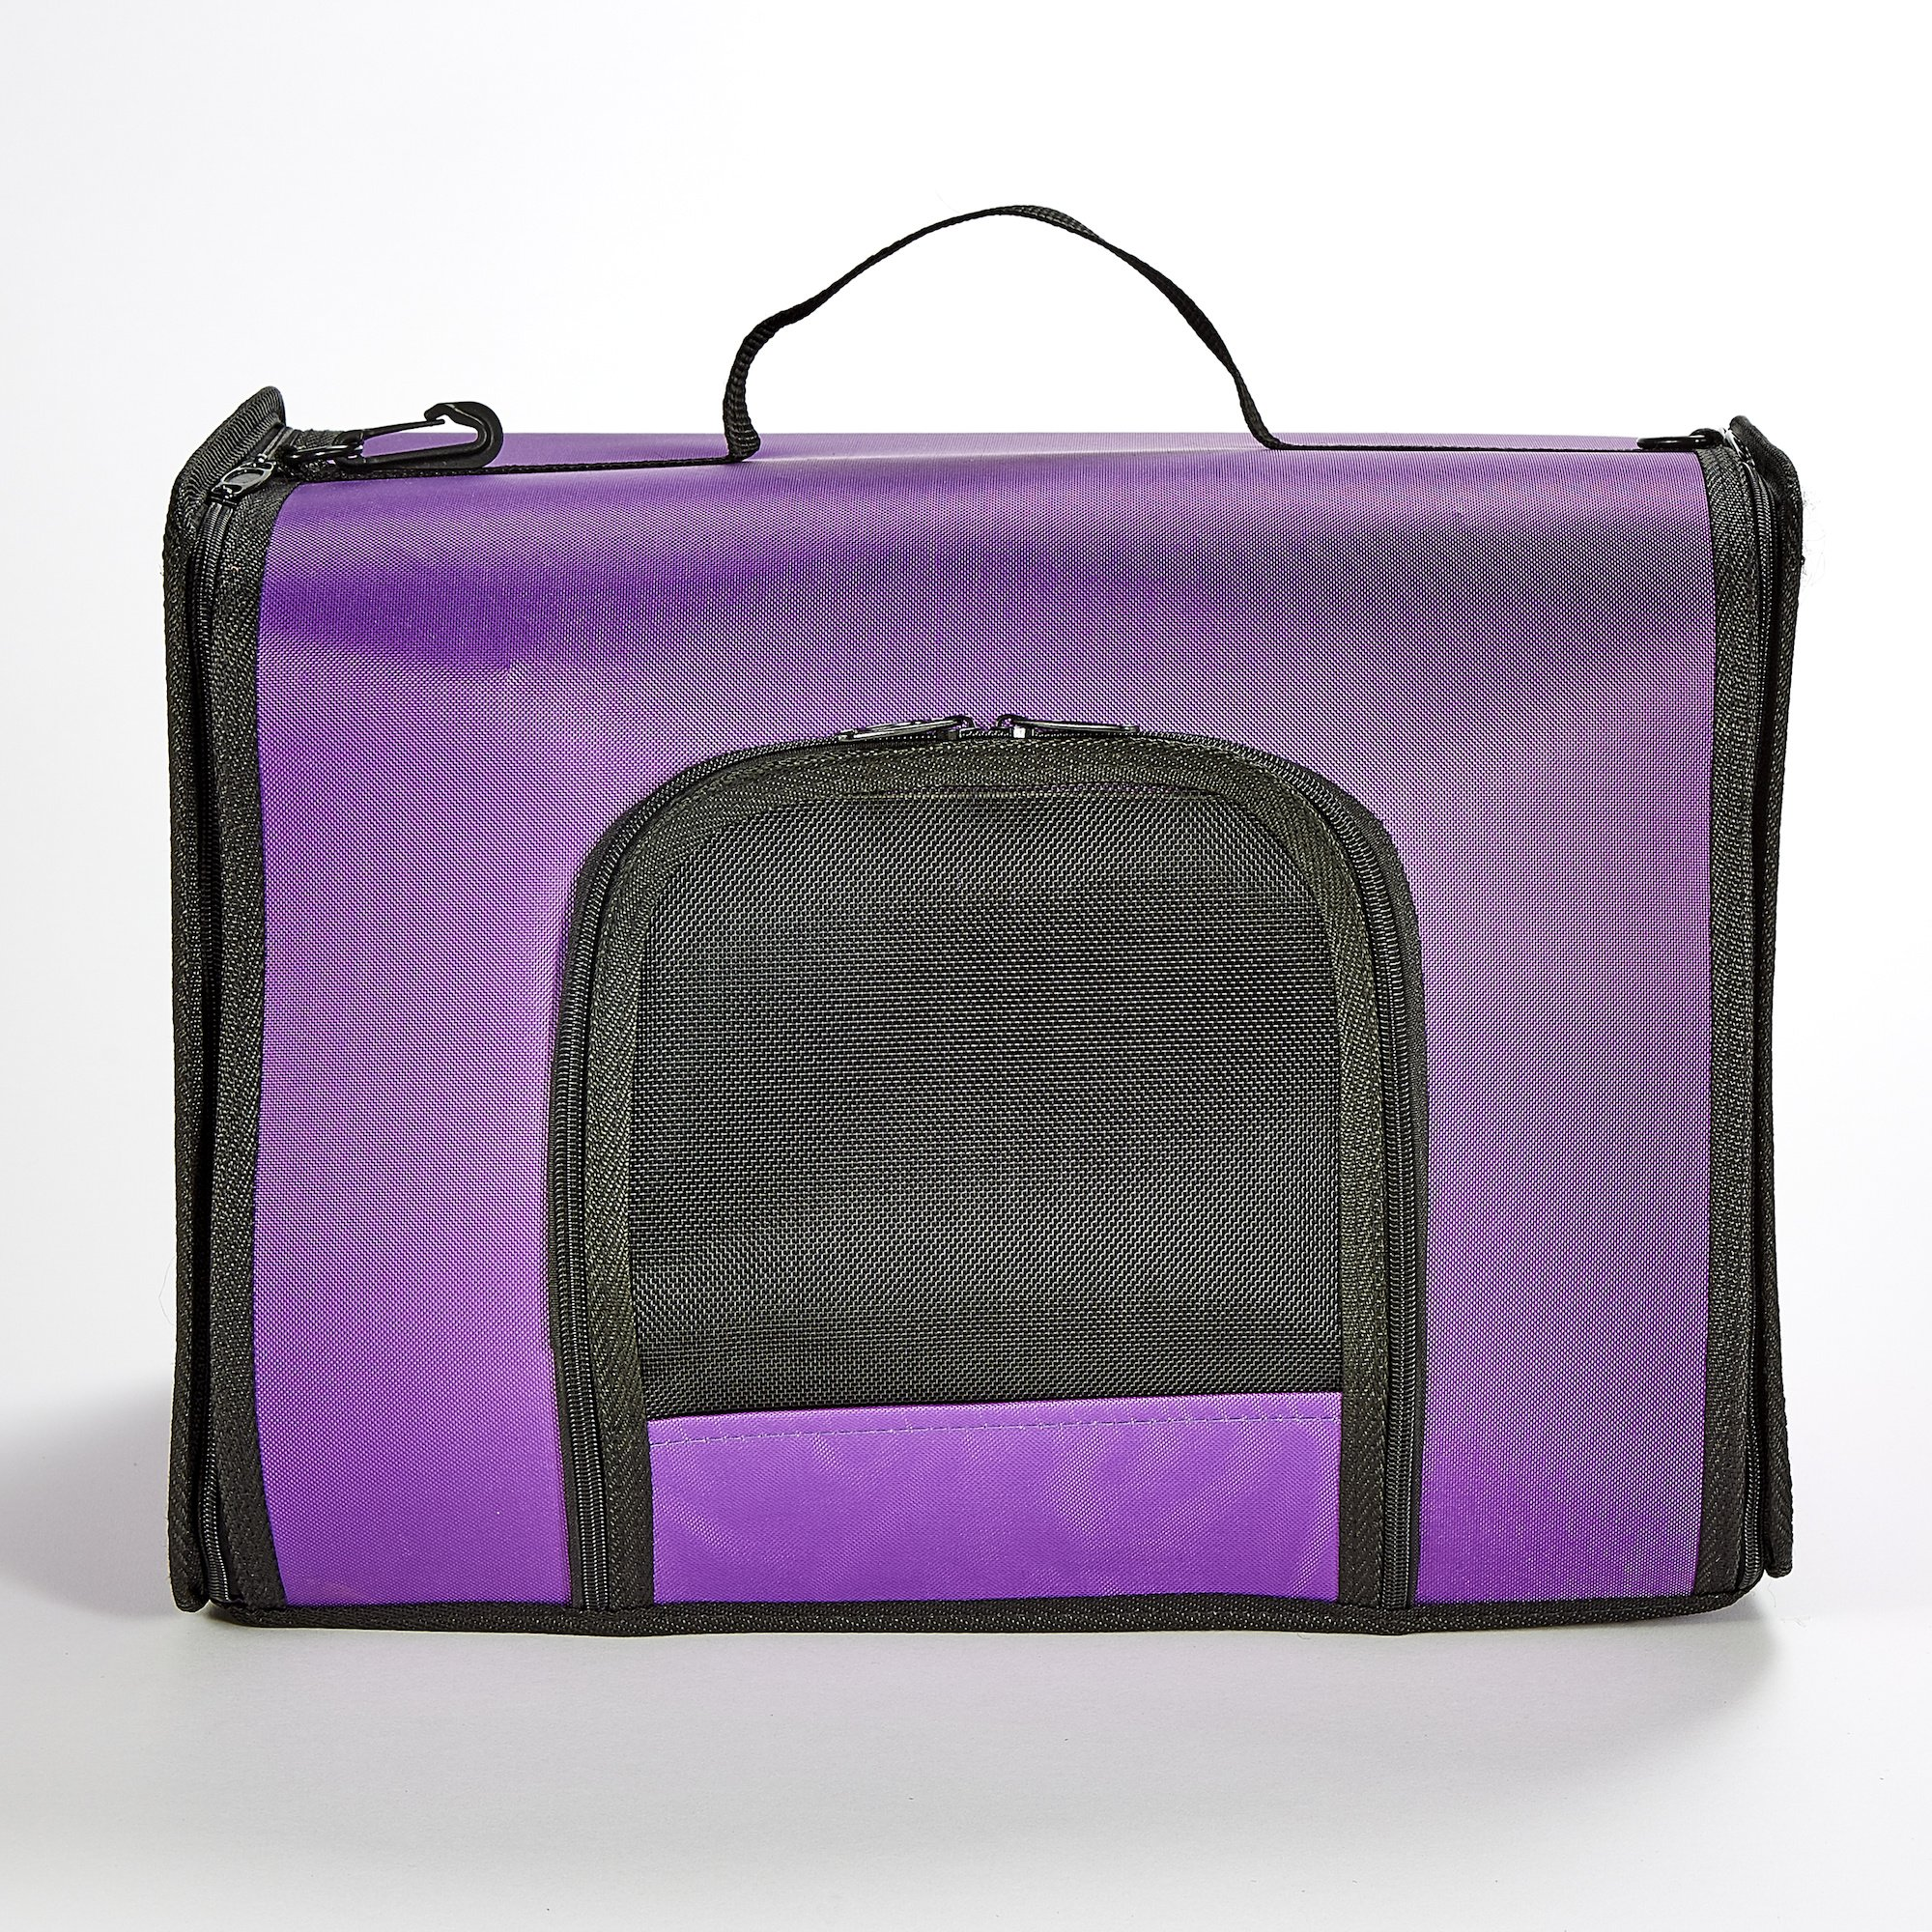 Kaytee Come Along Carrier, Large, Assorted Colors by Kaytee (Image #2)